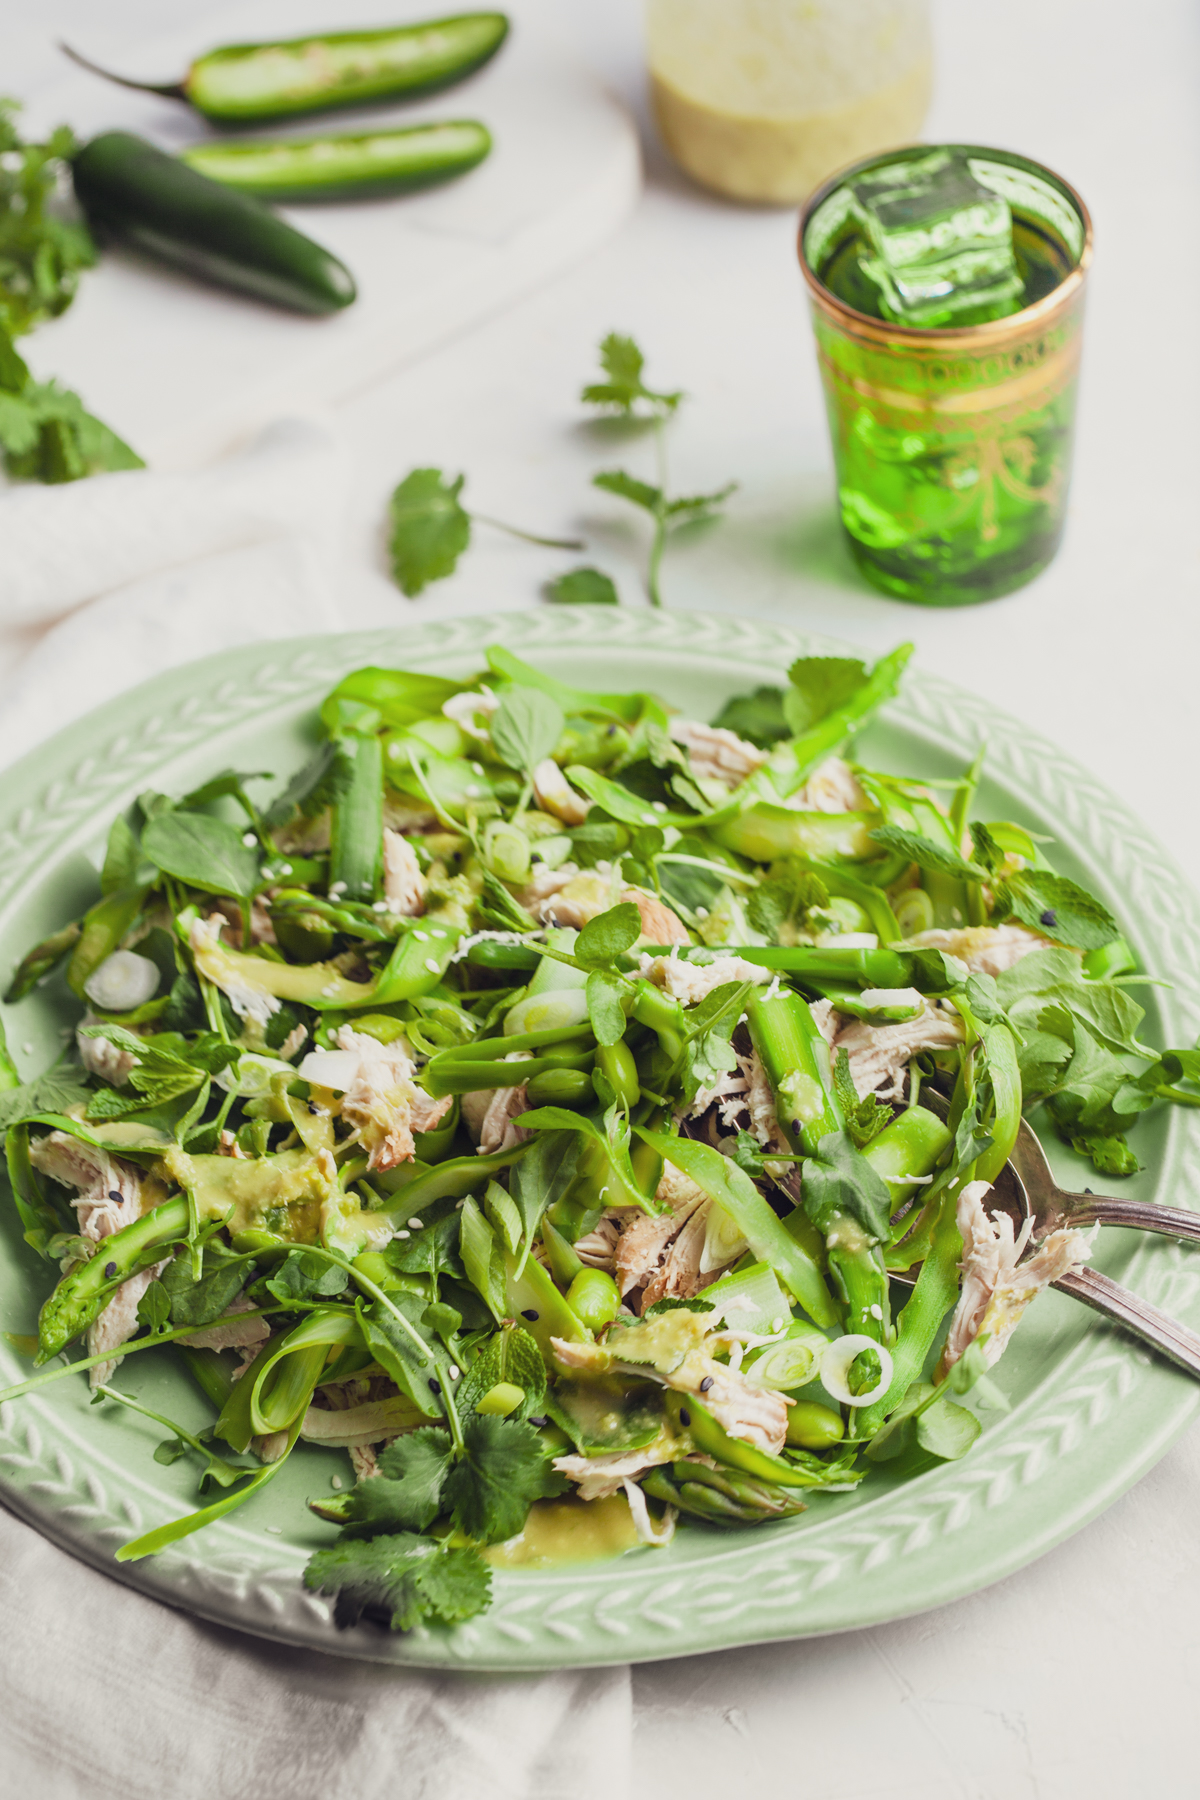 Asian Asparagus and Edamame Salad with Shredded Chicken